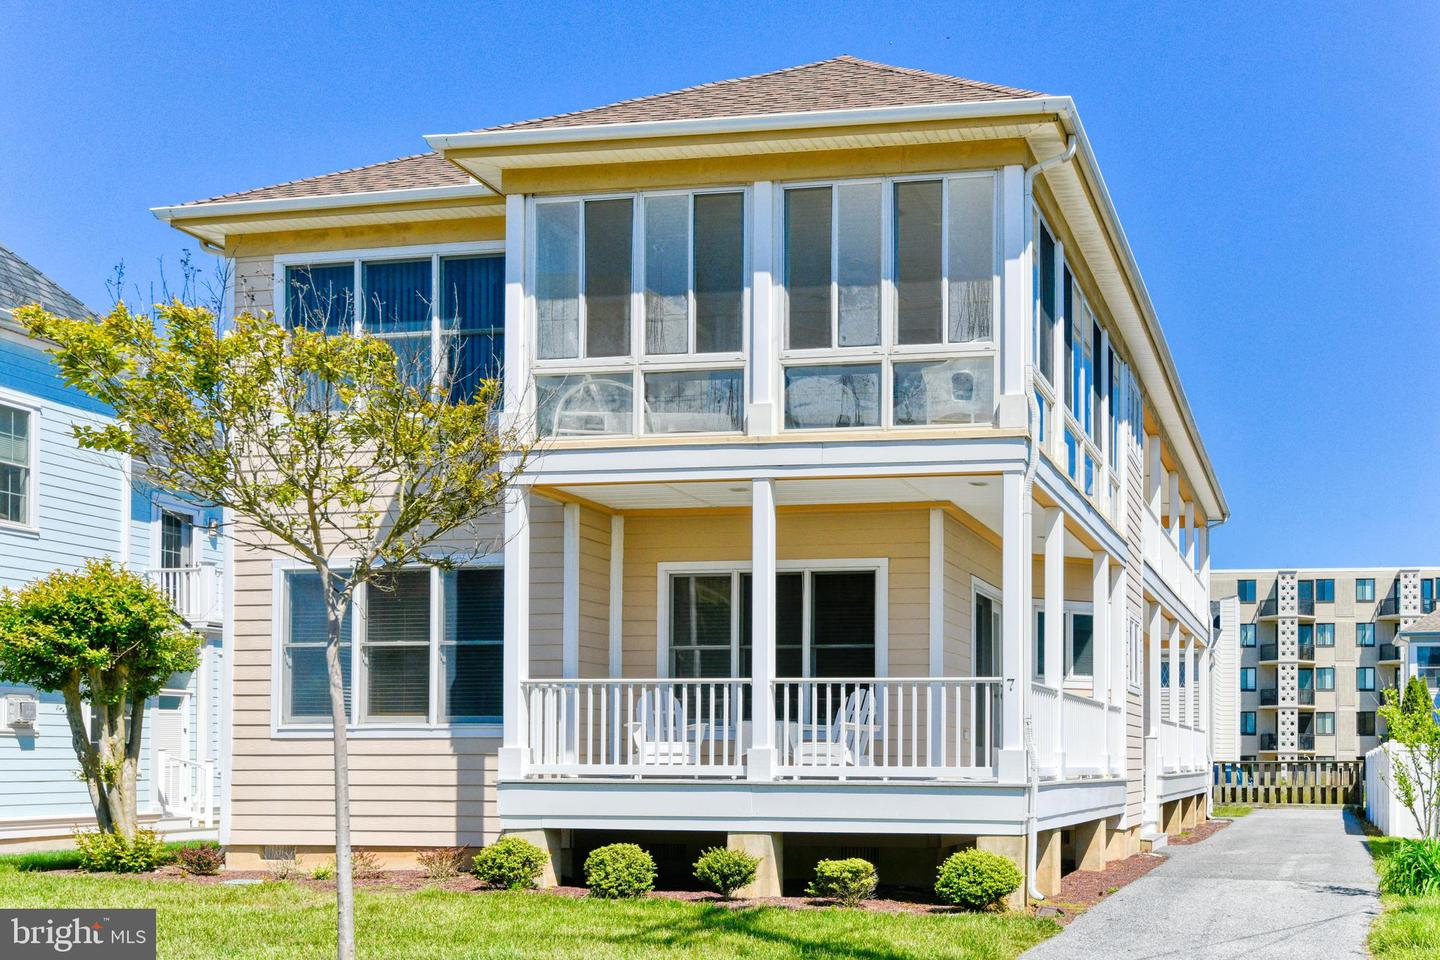 DESU140752-301729565743-2019-05-20-15-11-27 7 Olive Ave | Rehoboth Beach, DE Real Estate For Sale | MLS# Desu140752  - 1st Choice Properties